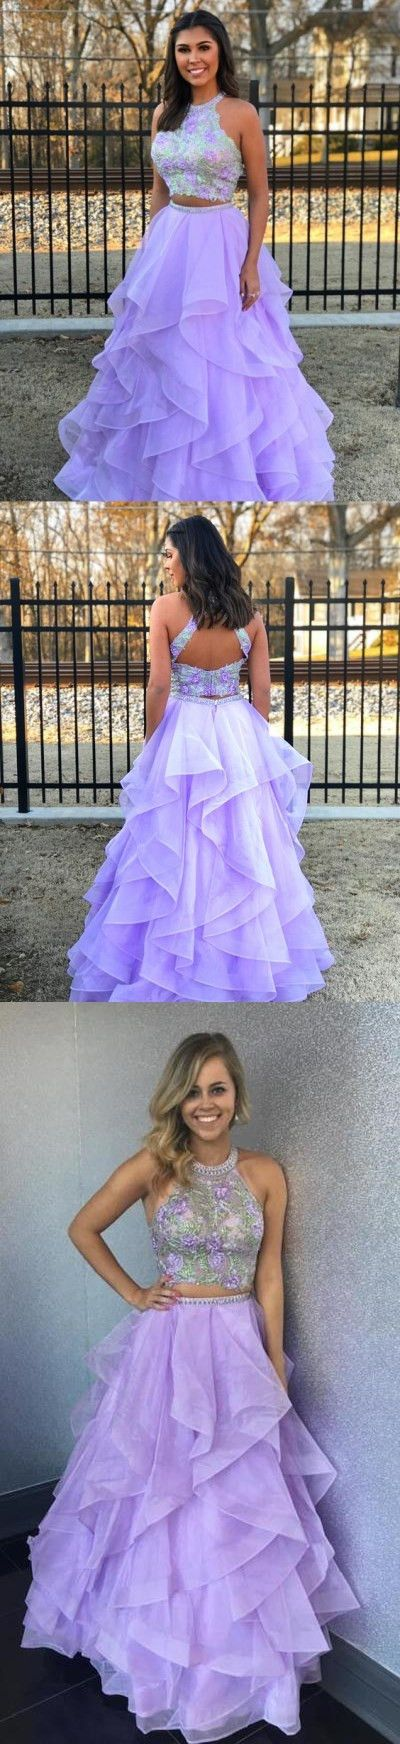 Two Piece Lavender Long Prom Dress with Open Back M1153#prom #promdress #promdresses #longpromdress #promgowns #promgown #2018style #newfashion #newstyles #2018newprom#eveninggown#twopiece#lavender#openback